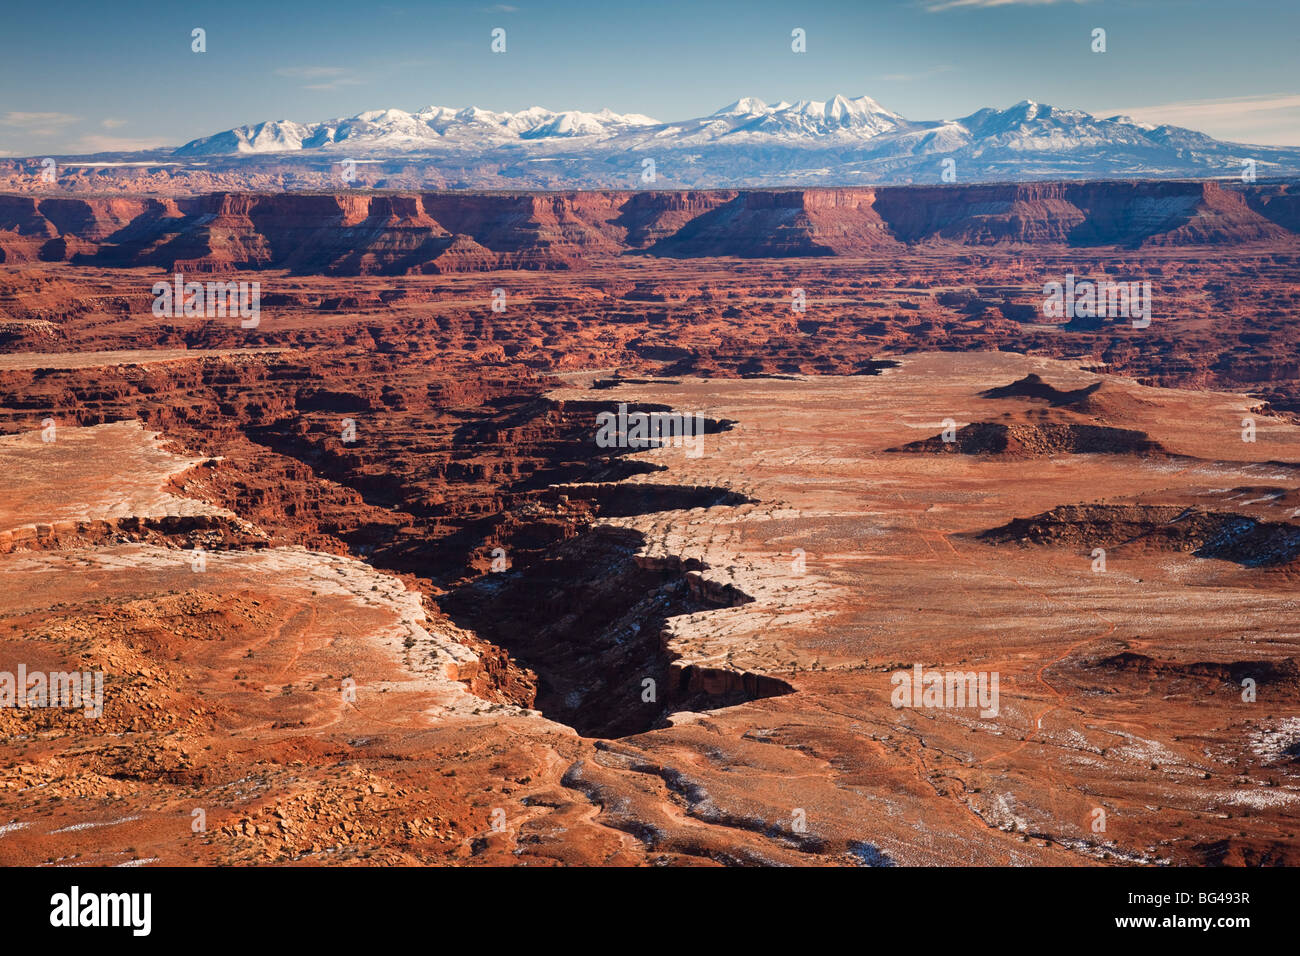 USA, Utah, Moab, Canyonlands National Park, Buck Canyon Overlook, winter - Stock Image